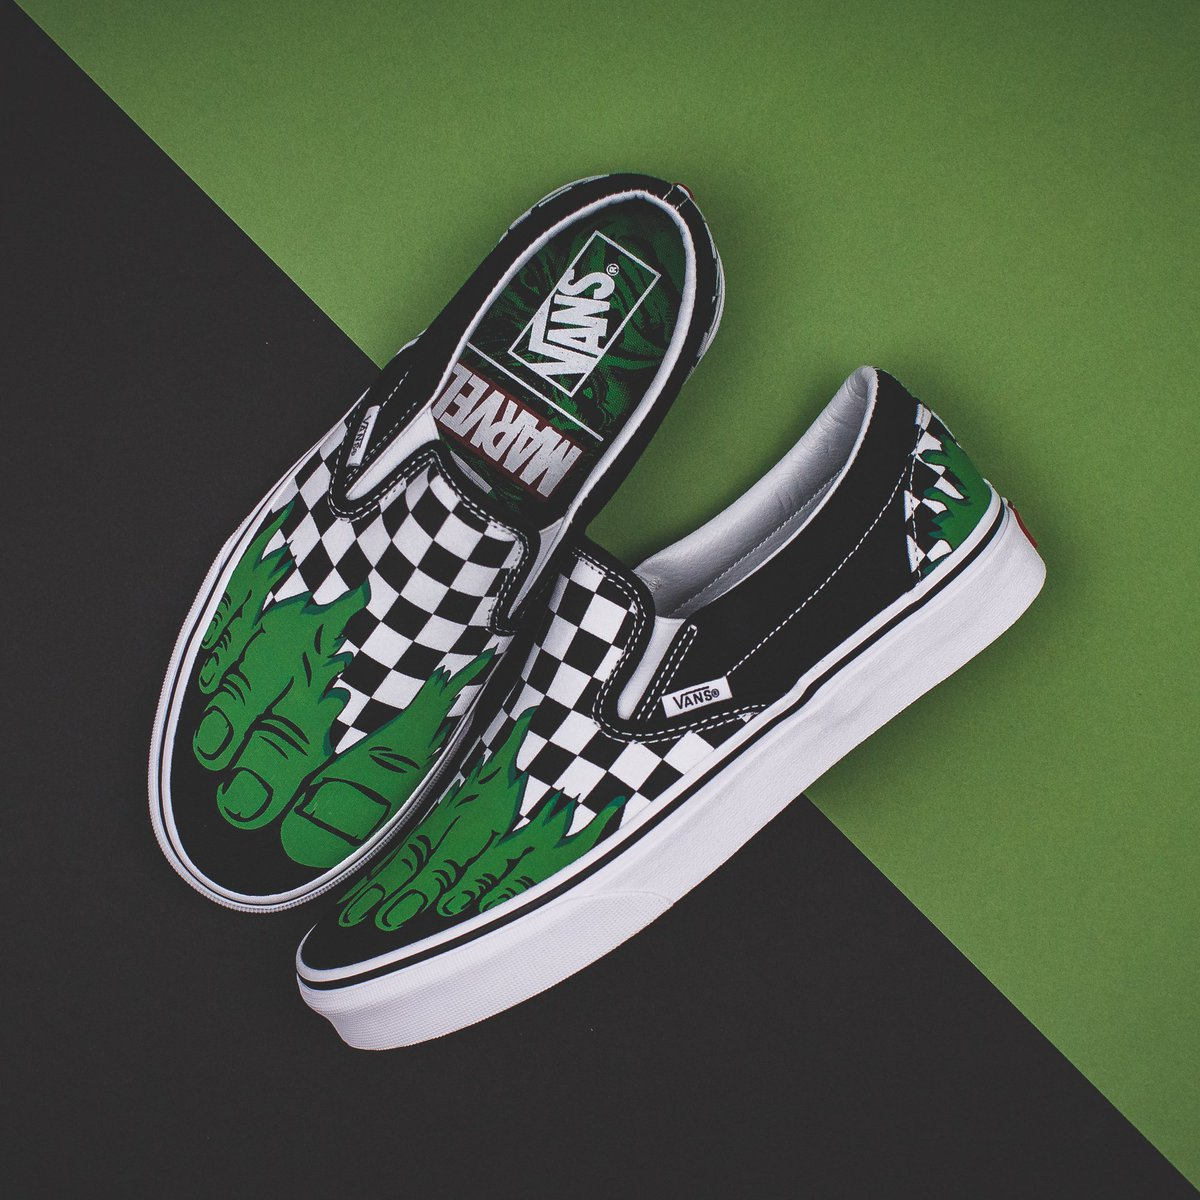 """Animado Sonrisa Confuso  Solestop ar Twitter: """"The Vans x Marvel collaboration features your  favorite superheroes being branded on shoes. Check out our entire lineup of  the Vans x Marvel collection available in-store and online now"""